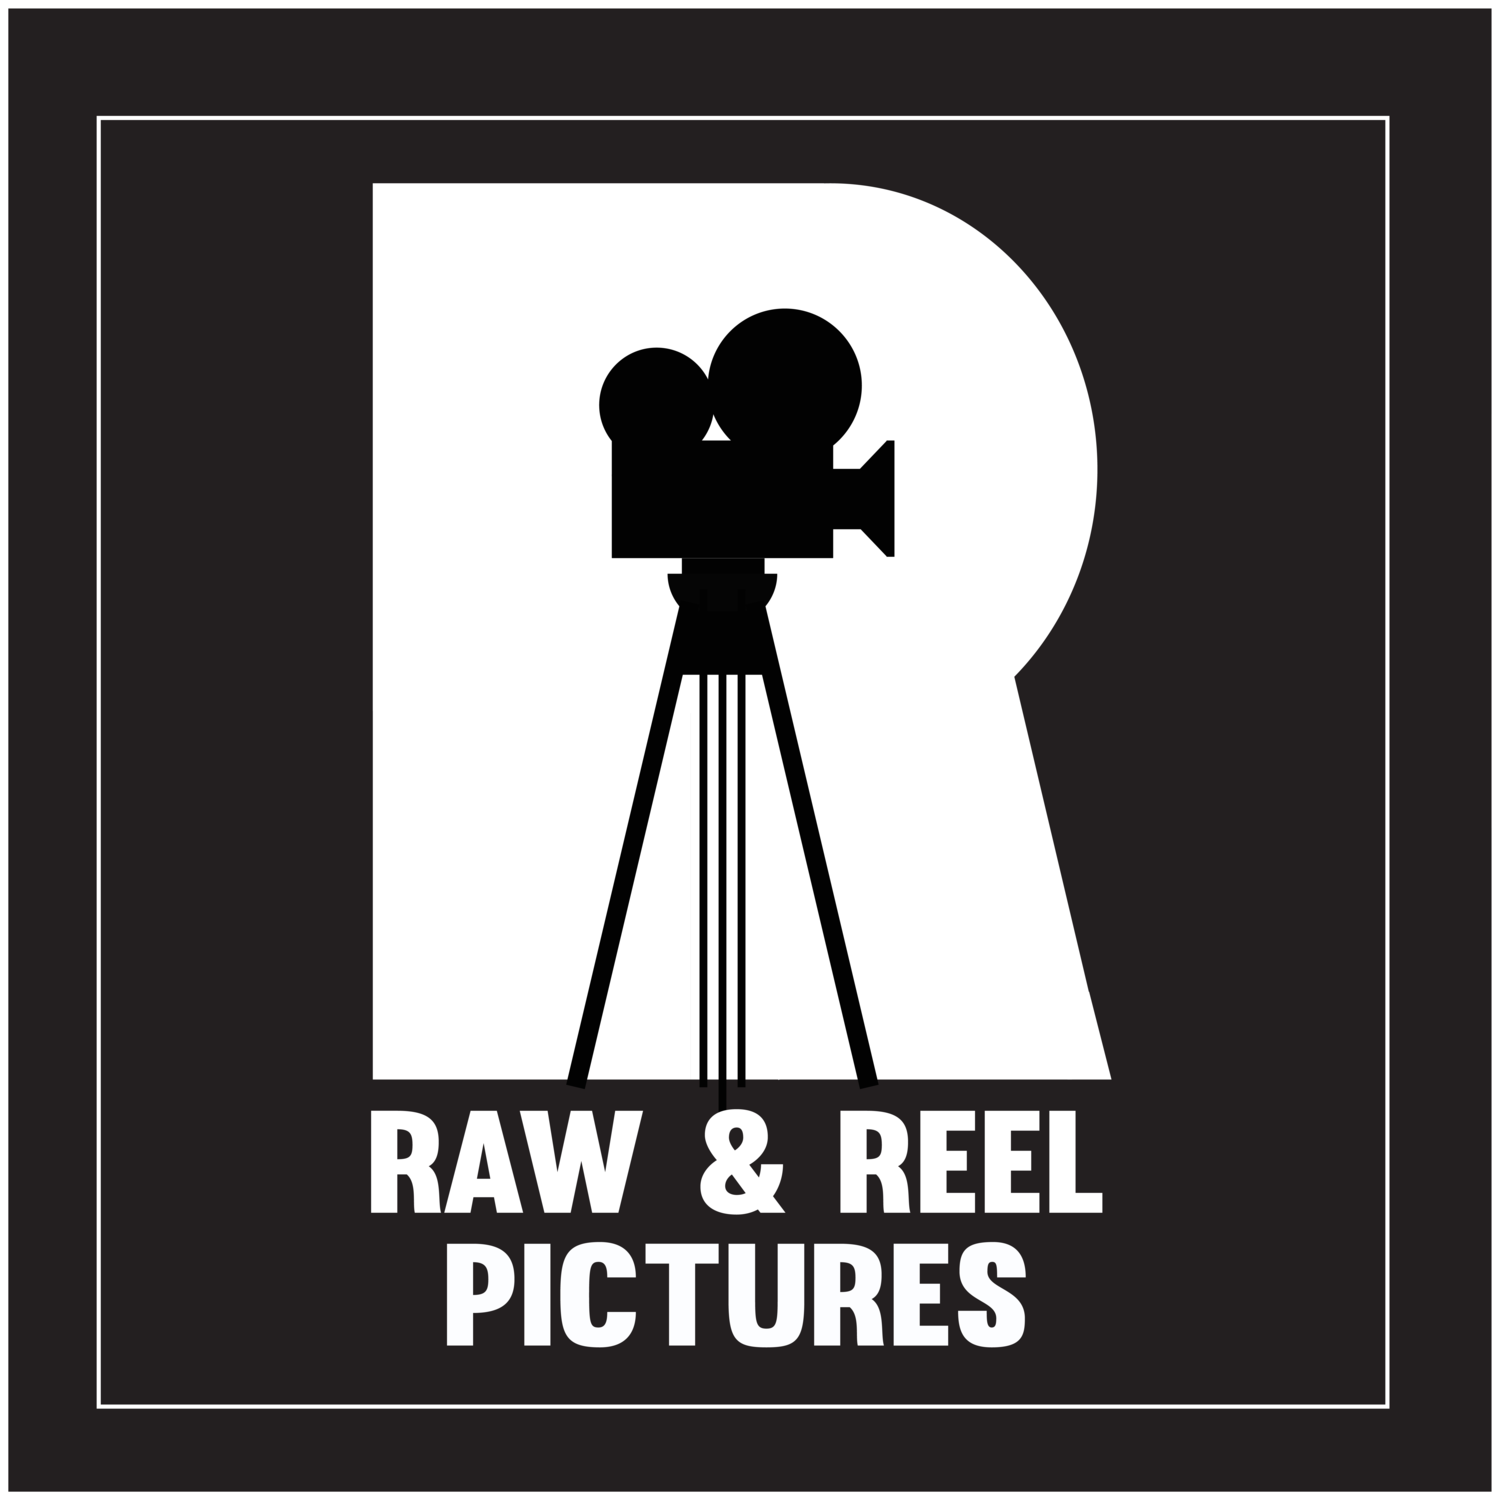 Raw & Reel Pictures